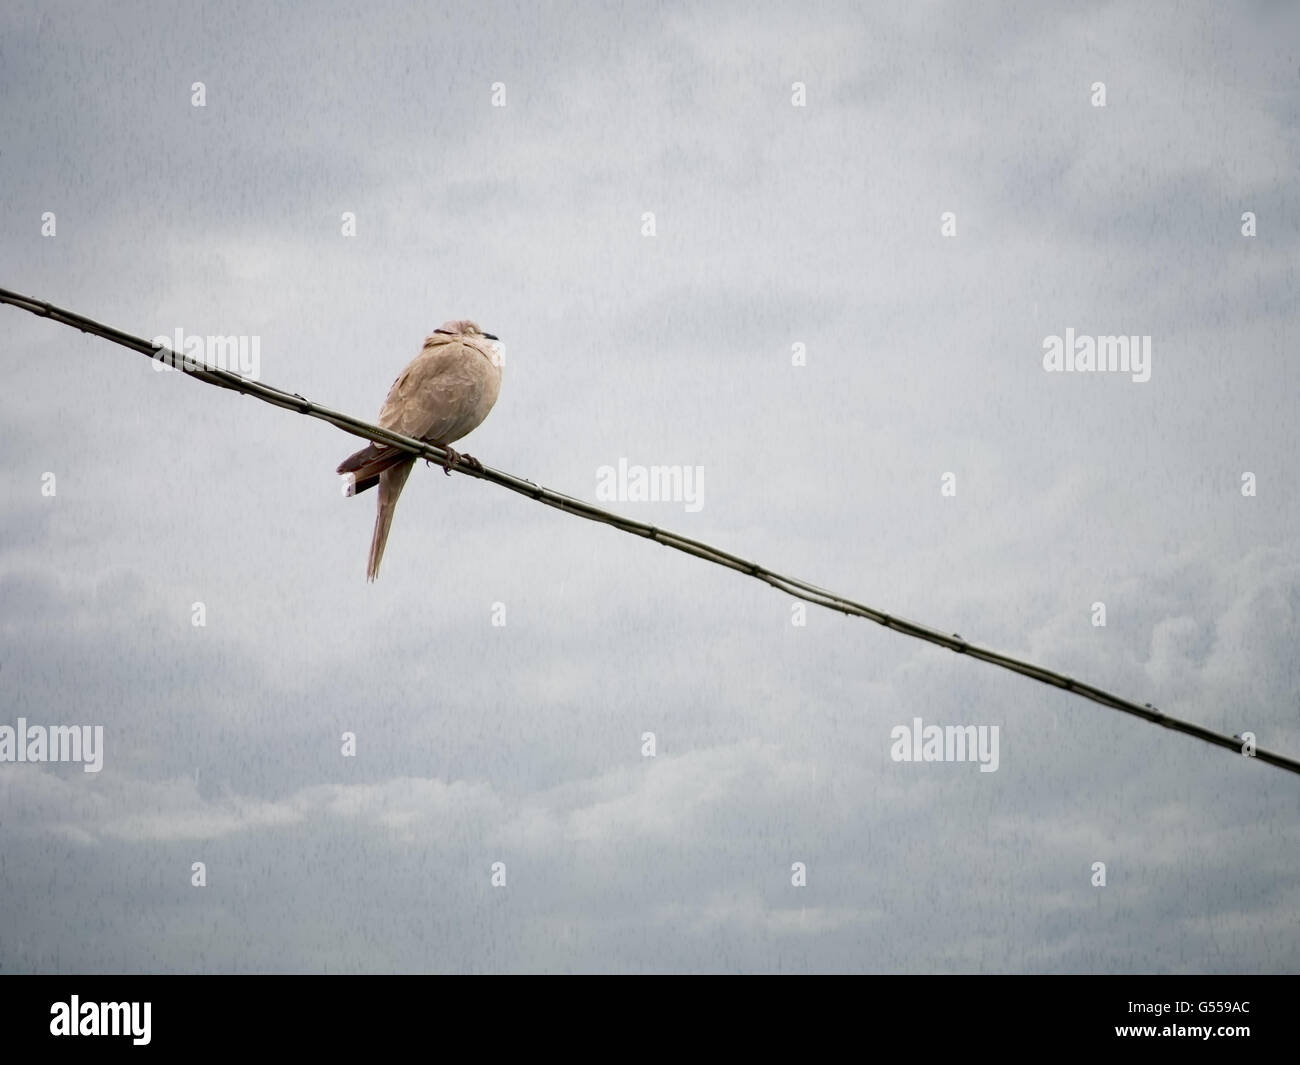 One soggy bird on the telephone wire. Rainy day background Stock ...